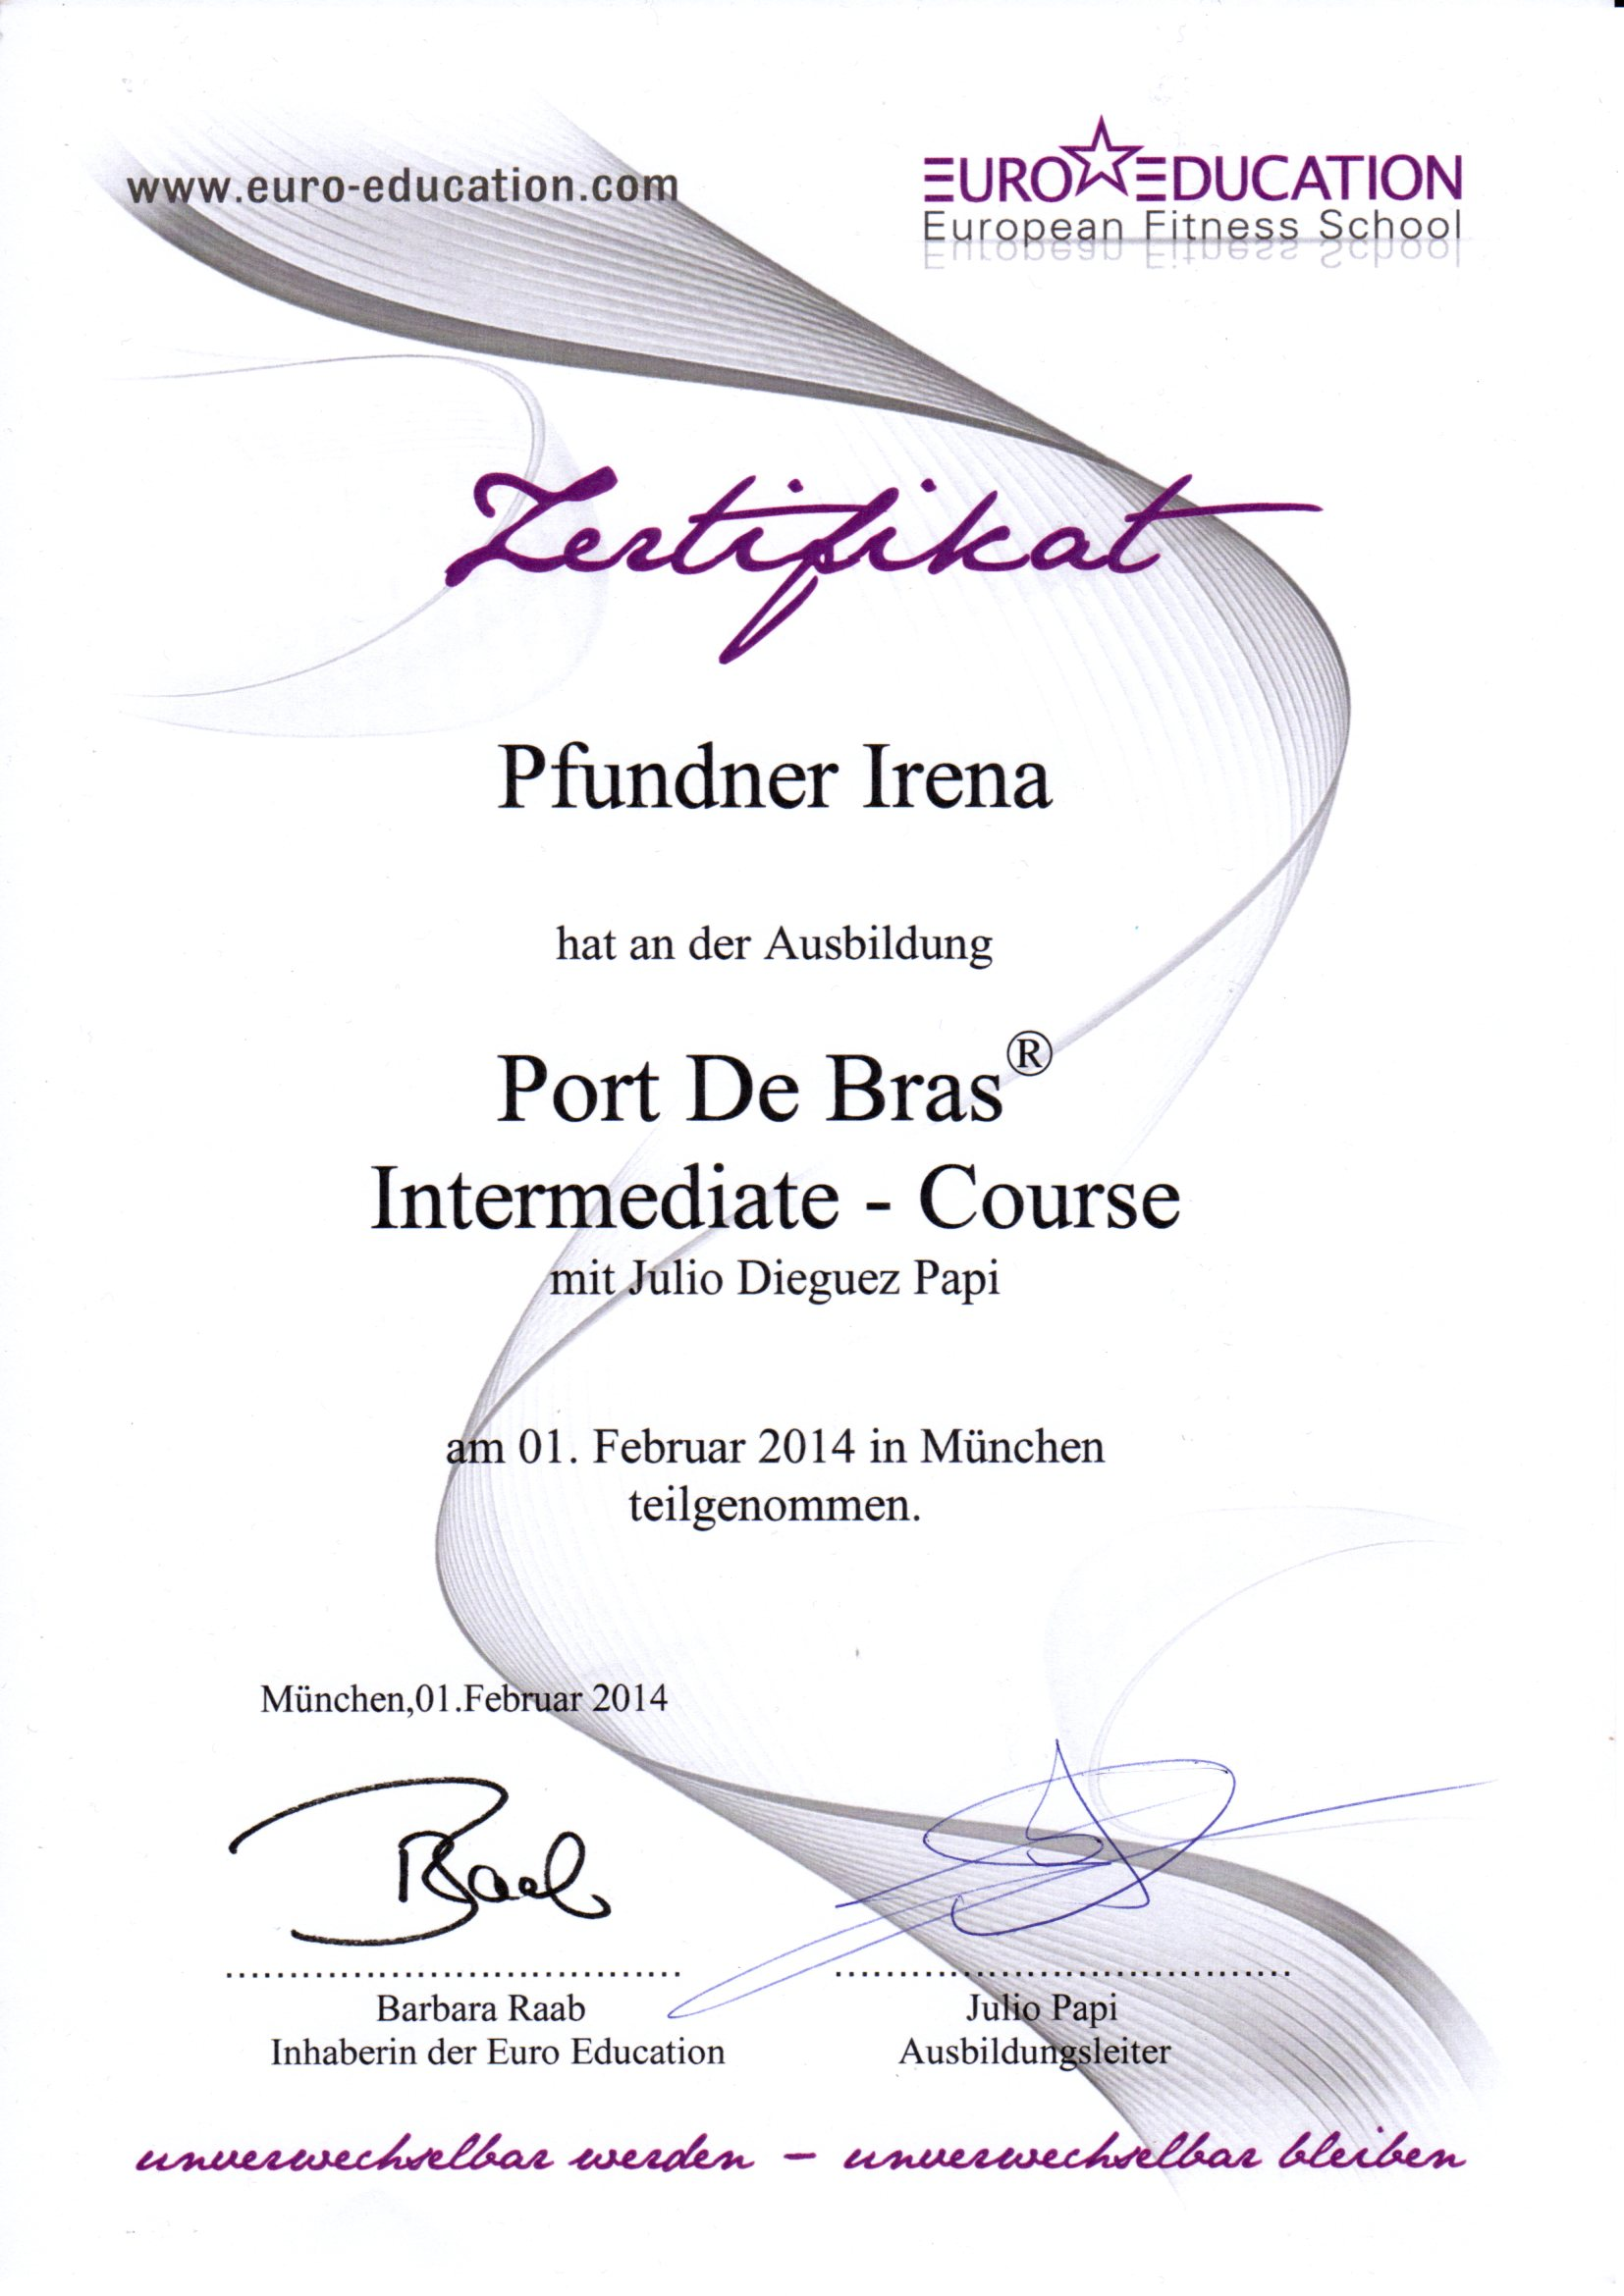 17. Port De Bras - Intermediate